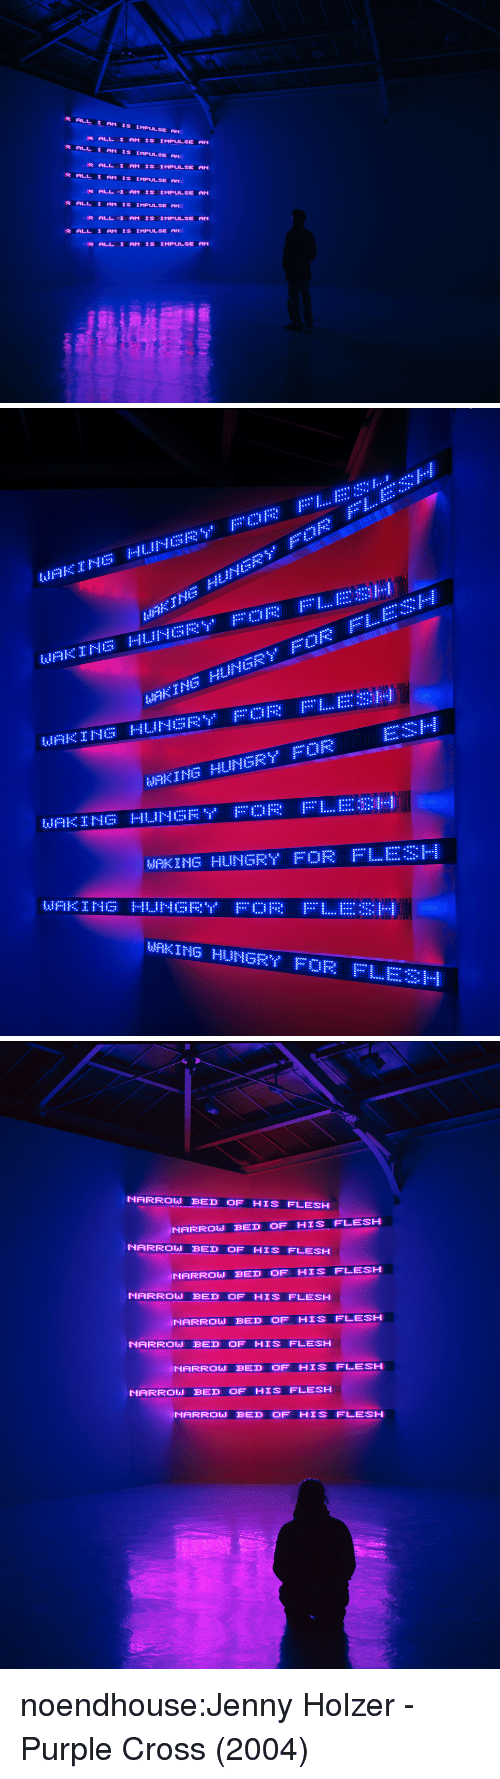 Hungry, Target, and Tumblr: ALL I AM IS IMPULSE ANI  R ALL I AM IS IMPULSE  R ALL I AM IS IMPULSE  R ALL 1 AM IS IMPULSE RC  1s IMPULSE   ぼNG  MAKING HUNGRY OR   NARROW BED OF HIS FLESH  NARROW BED OF HIS FLESH  NARROWBED OF HIS FLESH  -  NARROW BED OF HIS FLESH  NARROU BED OF HIS FLESH  NARROW BED OF HIS FLESH  NARROW BED OF HIS FLESH  NARROW BED OF HIS FLESH  NARROW BED OF HIS FLESH  NARROJ  BED OF HIS  FLESH noendhouse:Jenny Holzer - Purple Cross (2004)